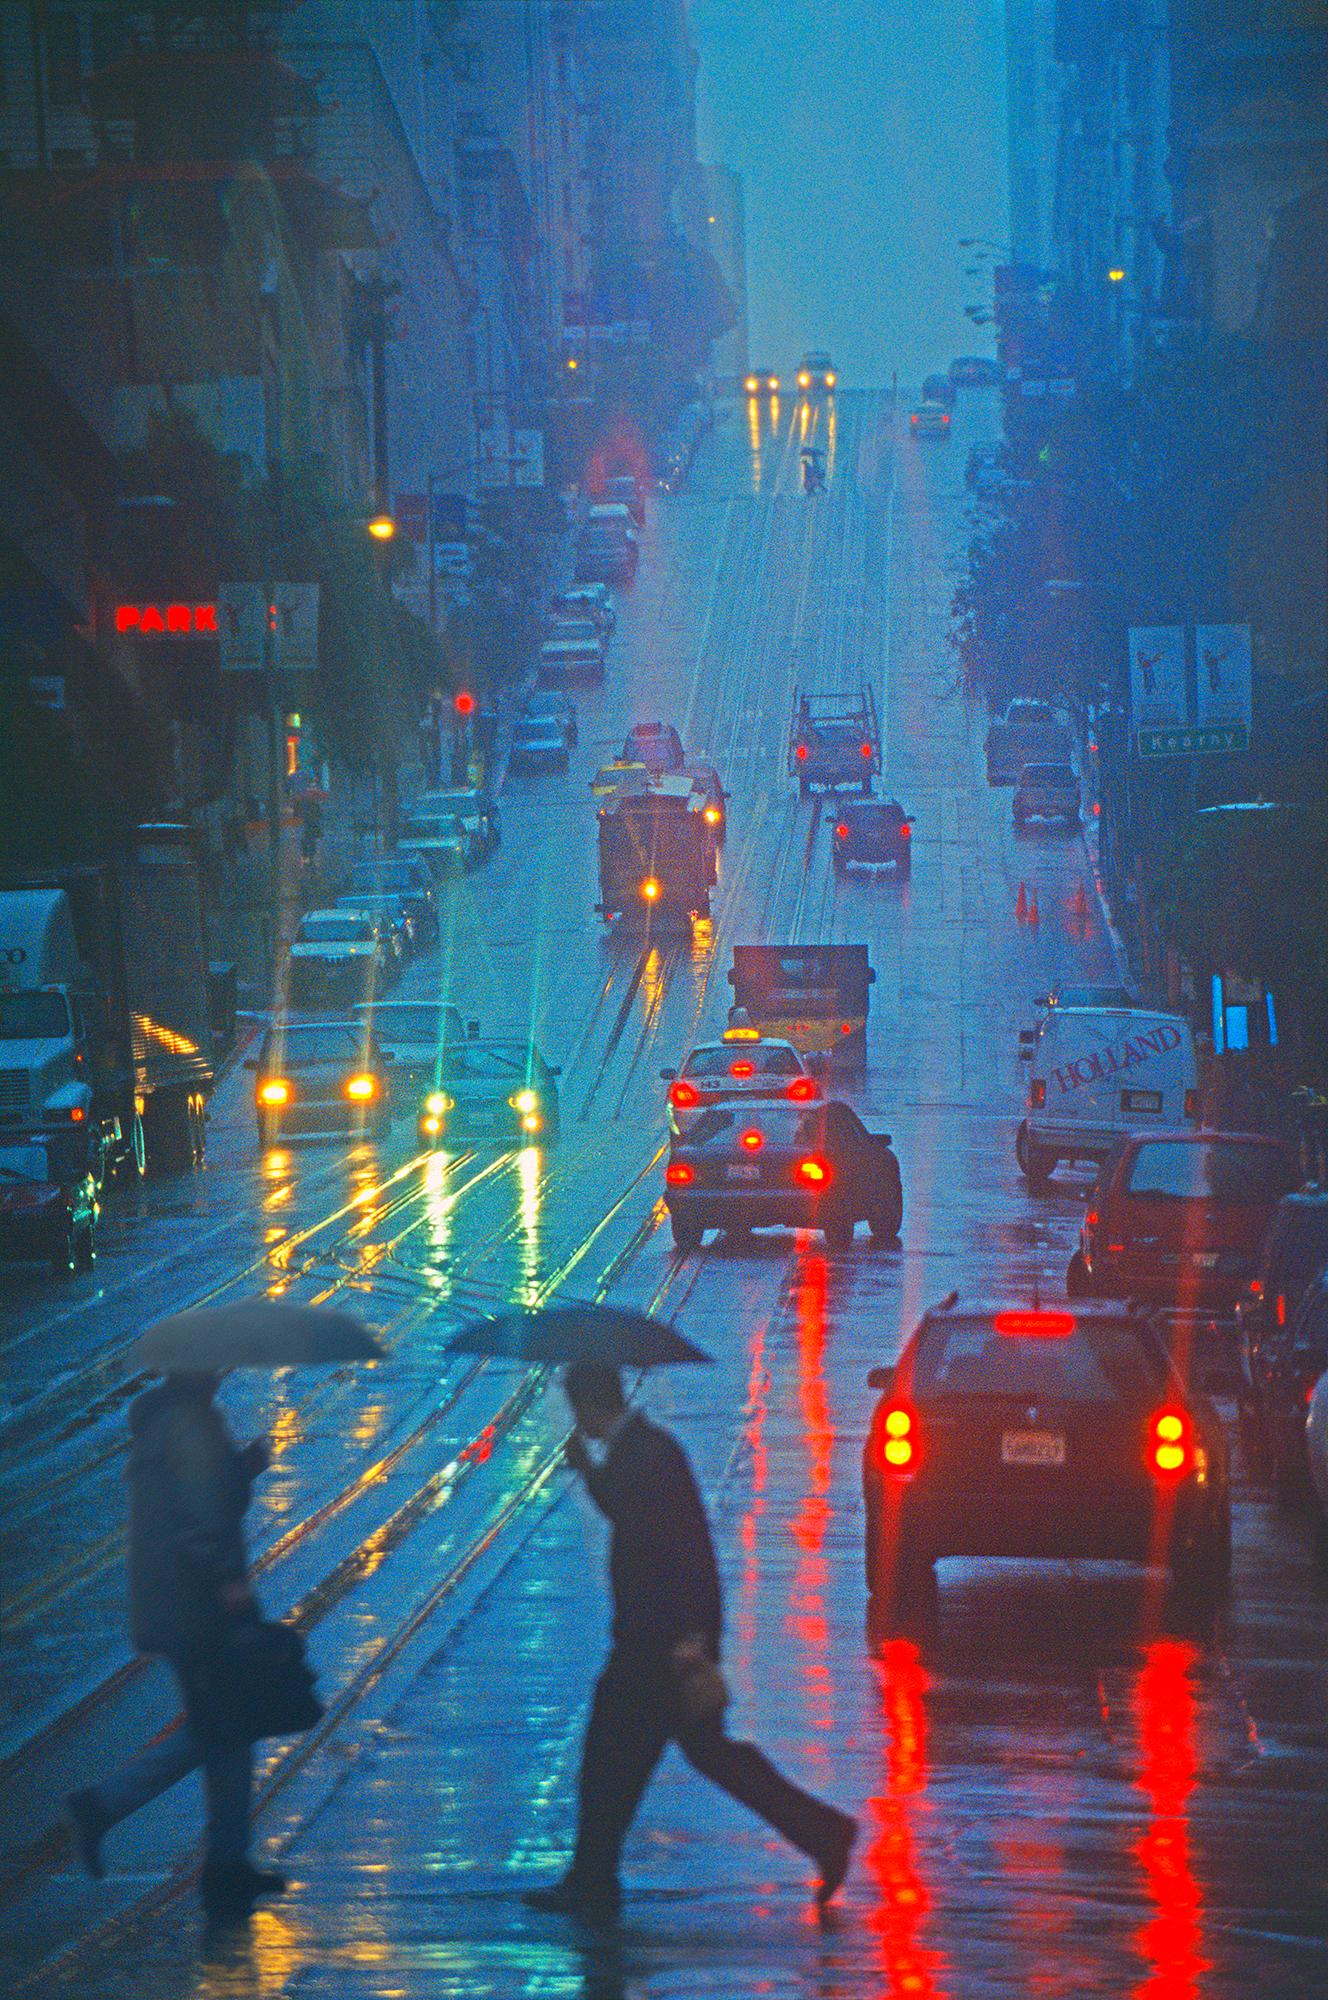 Post-Impressionist Color Photography